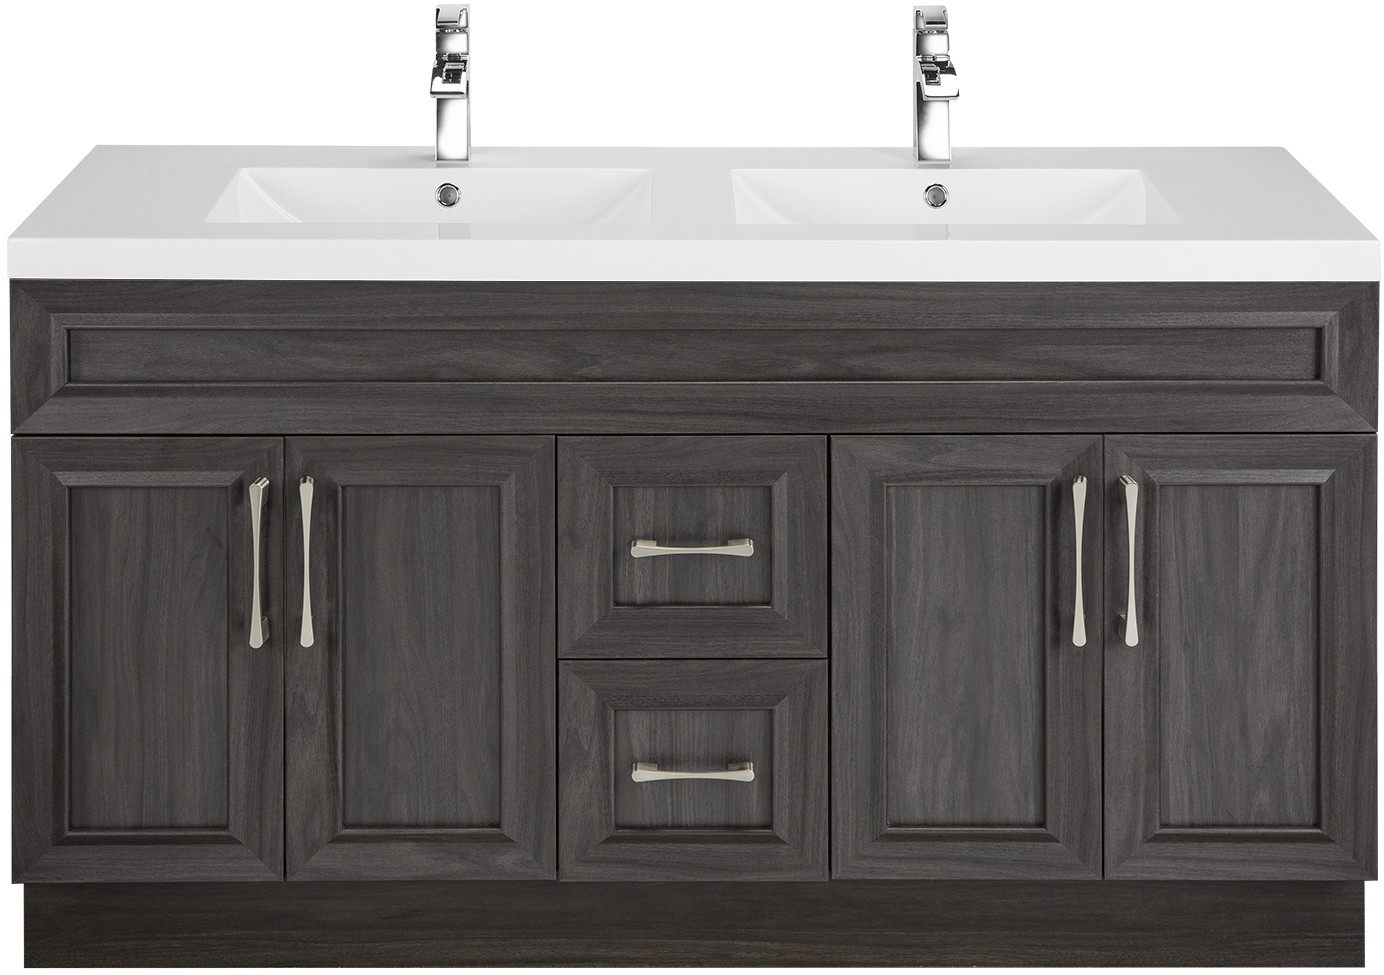 Cutler Kitchen Bath Cckatr60dbt 60 Inch Freestanding Double Bowl Vanity With 2 Soft Close Drawers Countertop And Sink And Handles Included